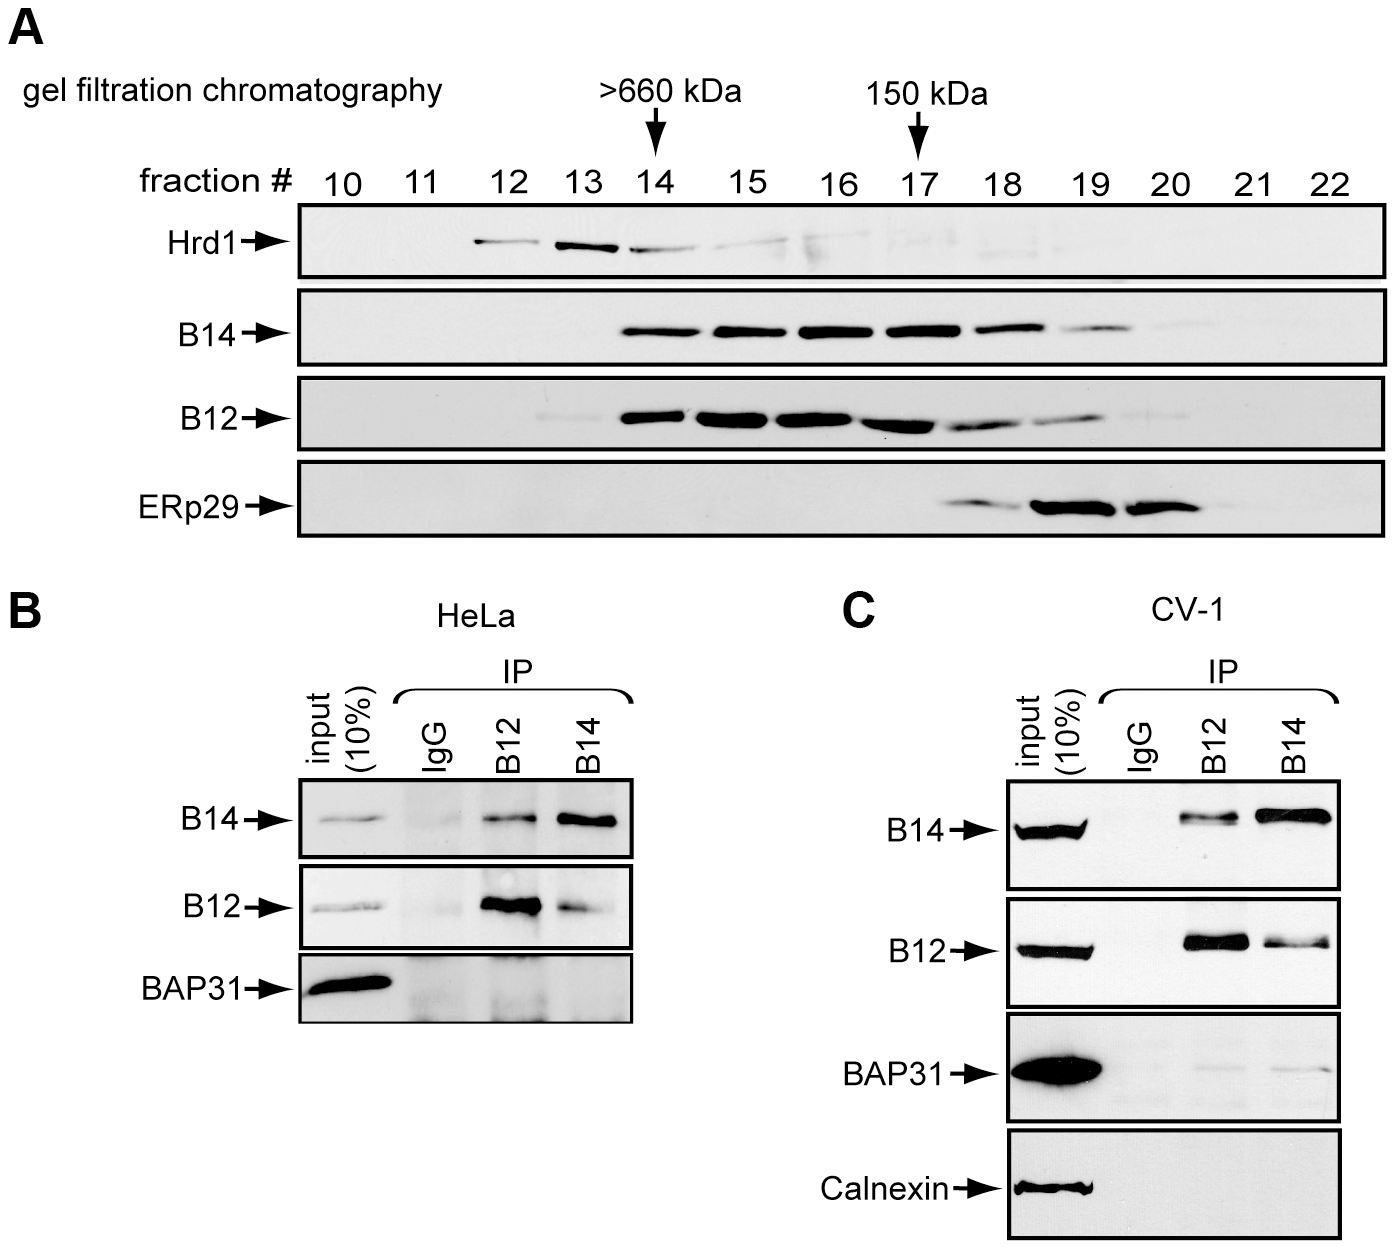 B14 complexes with B12.